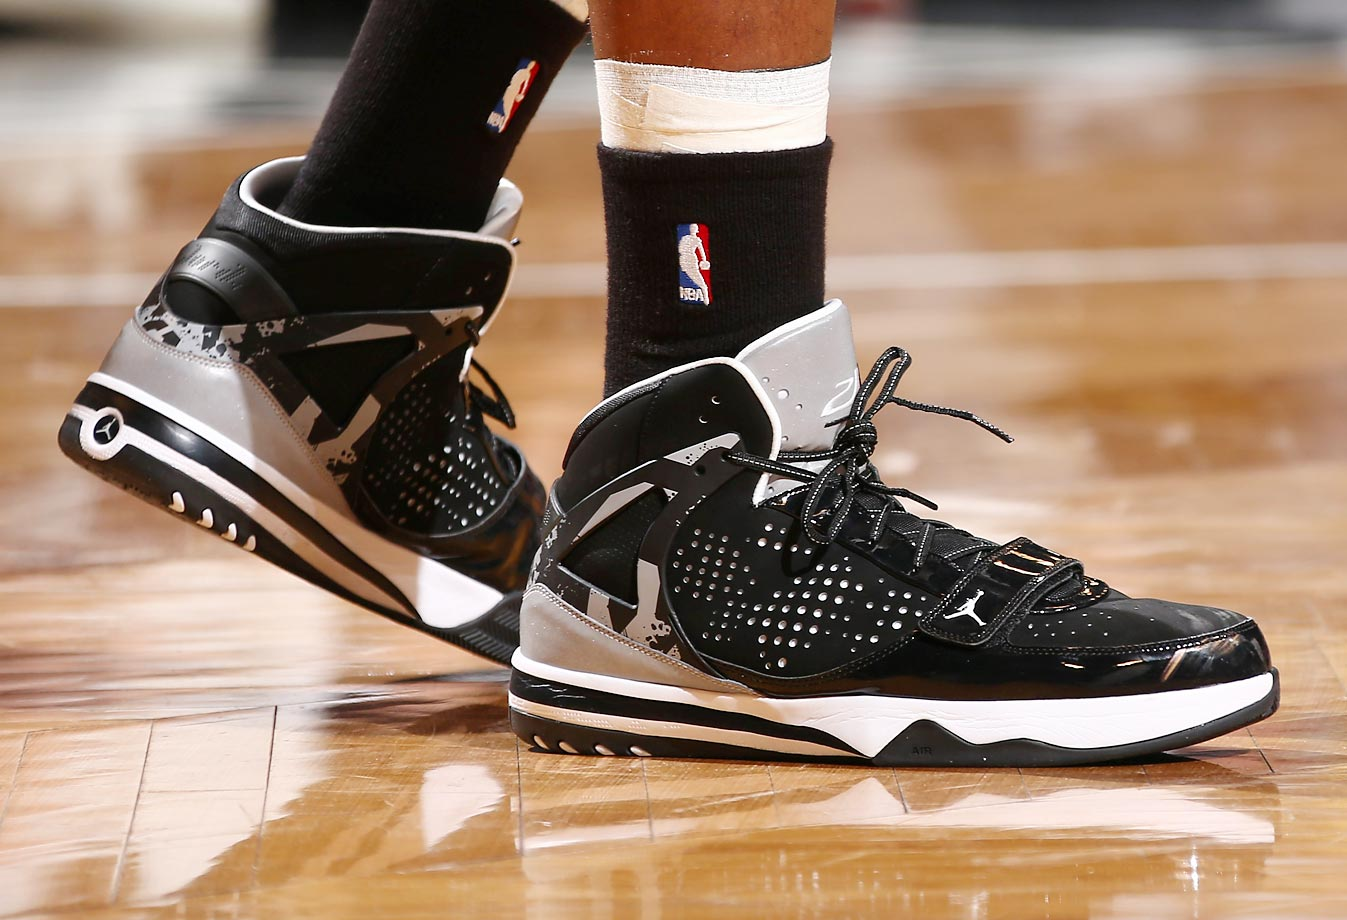 Johnson's sneakers are shown in Game Four of the Eastern Conference Semifinals against the Miami Heat on May 12, 2014